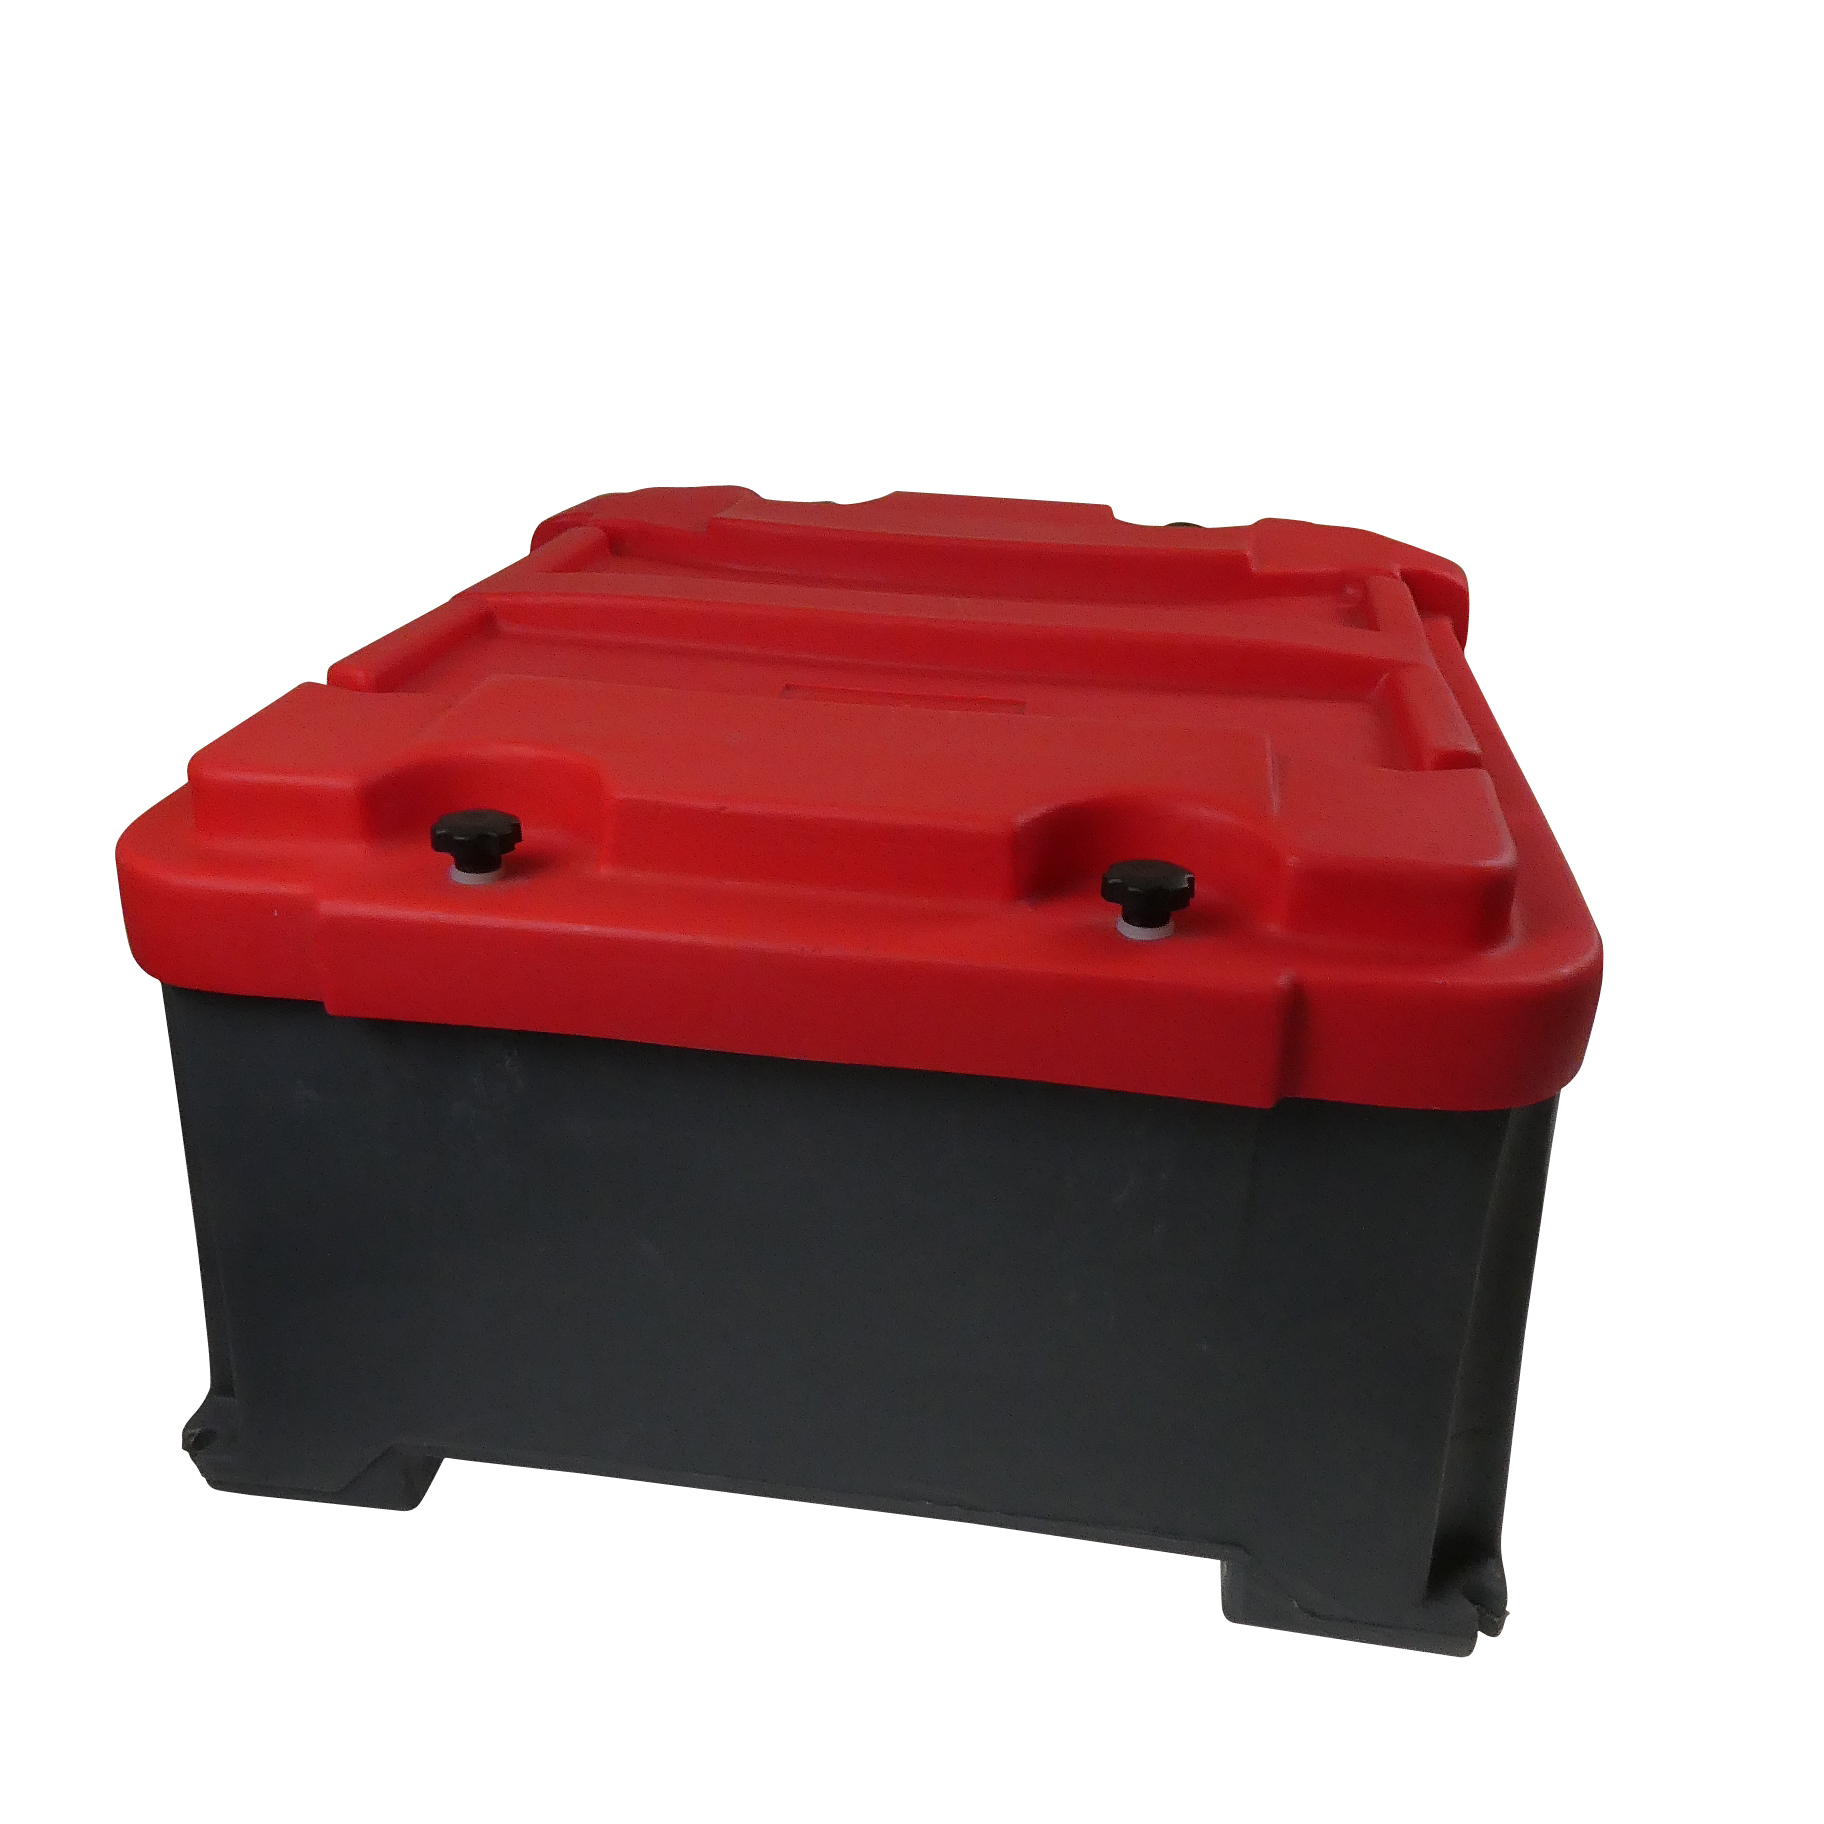 Heavy Duty battery Box - For 1 or 2 Batteries